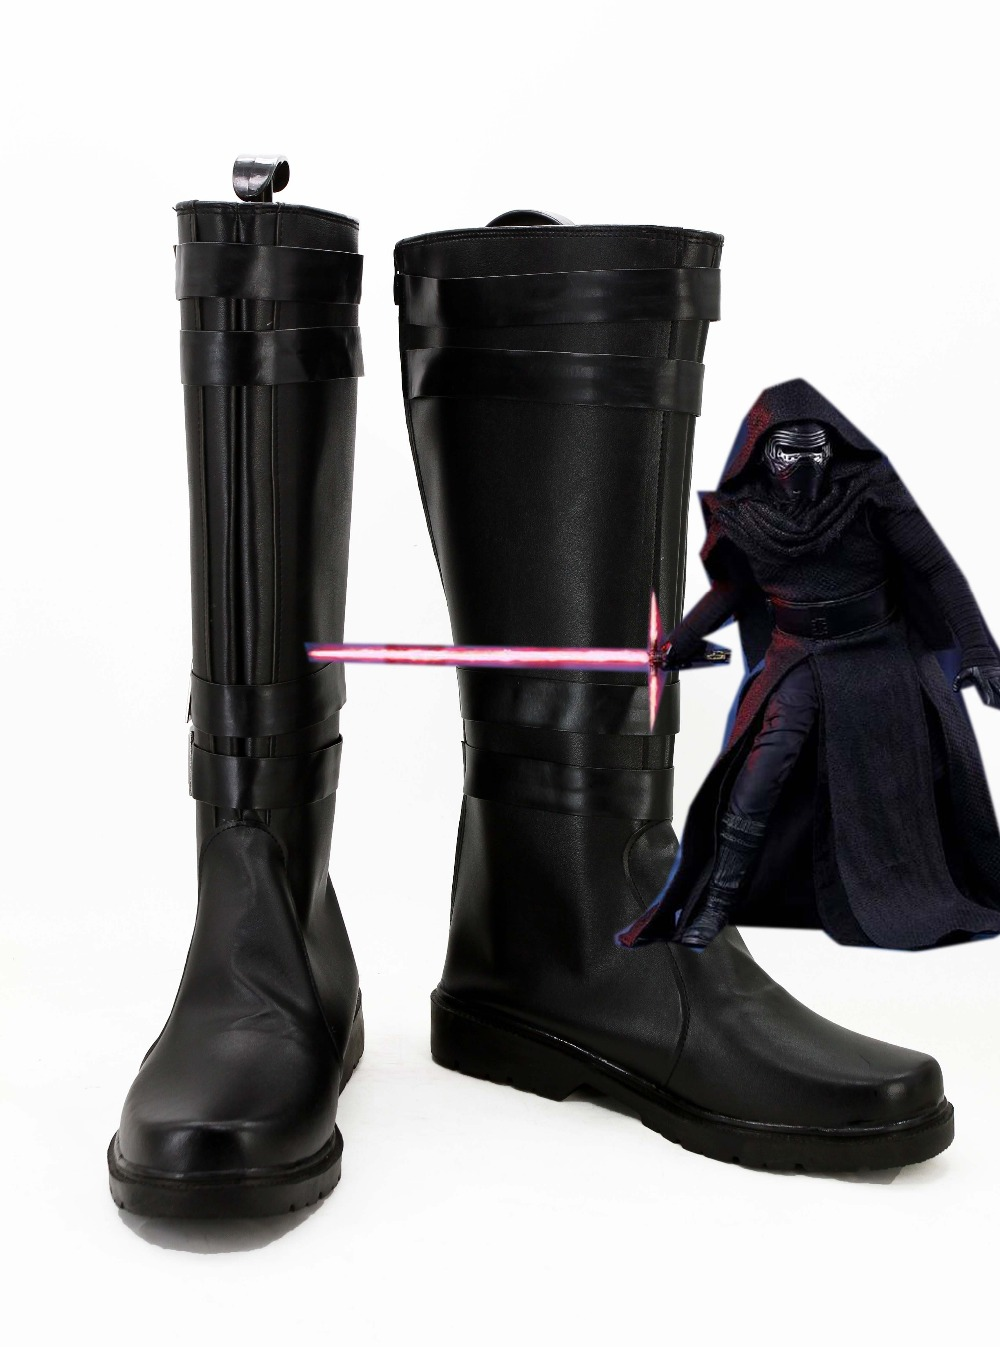 Star Wars 7: The Force Awakens Kylo Ren Boots Shoes Cosplay por encargo